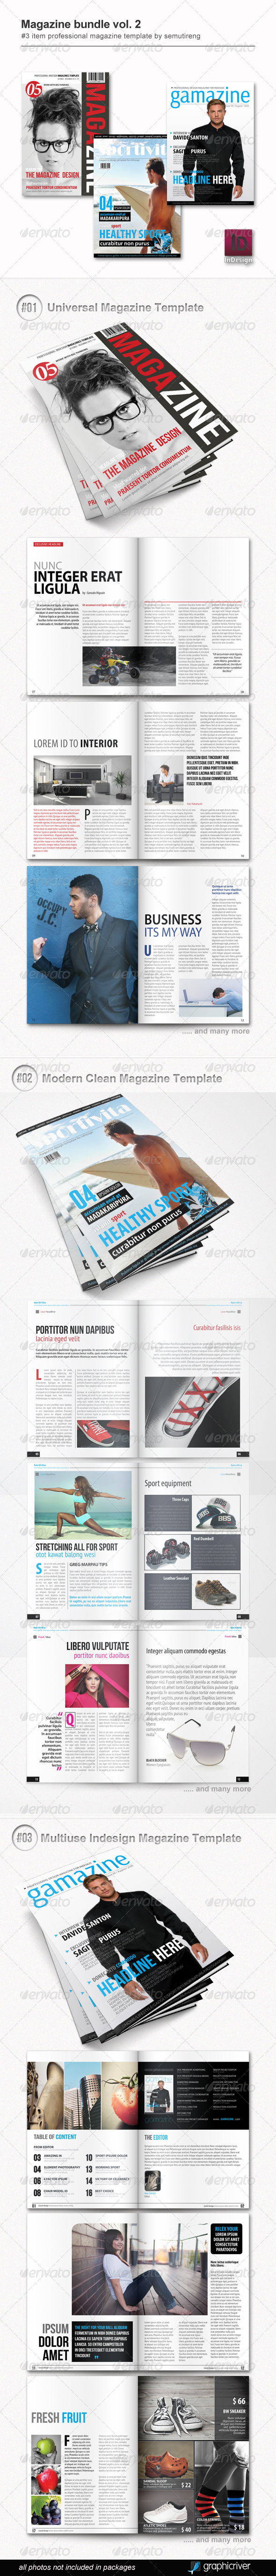 GraphicRiver Magazine Bundle Vol 2 6467756